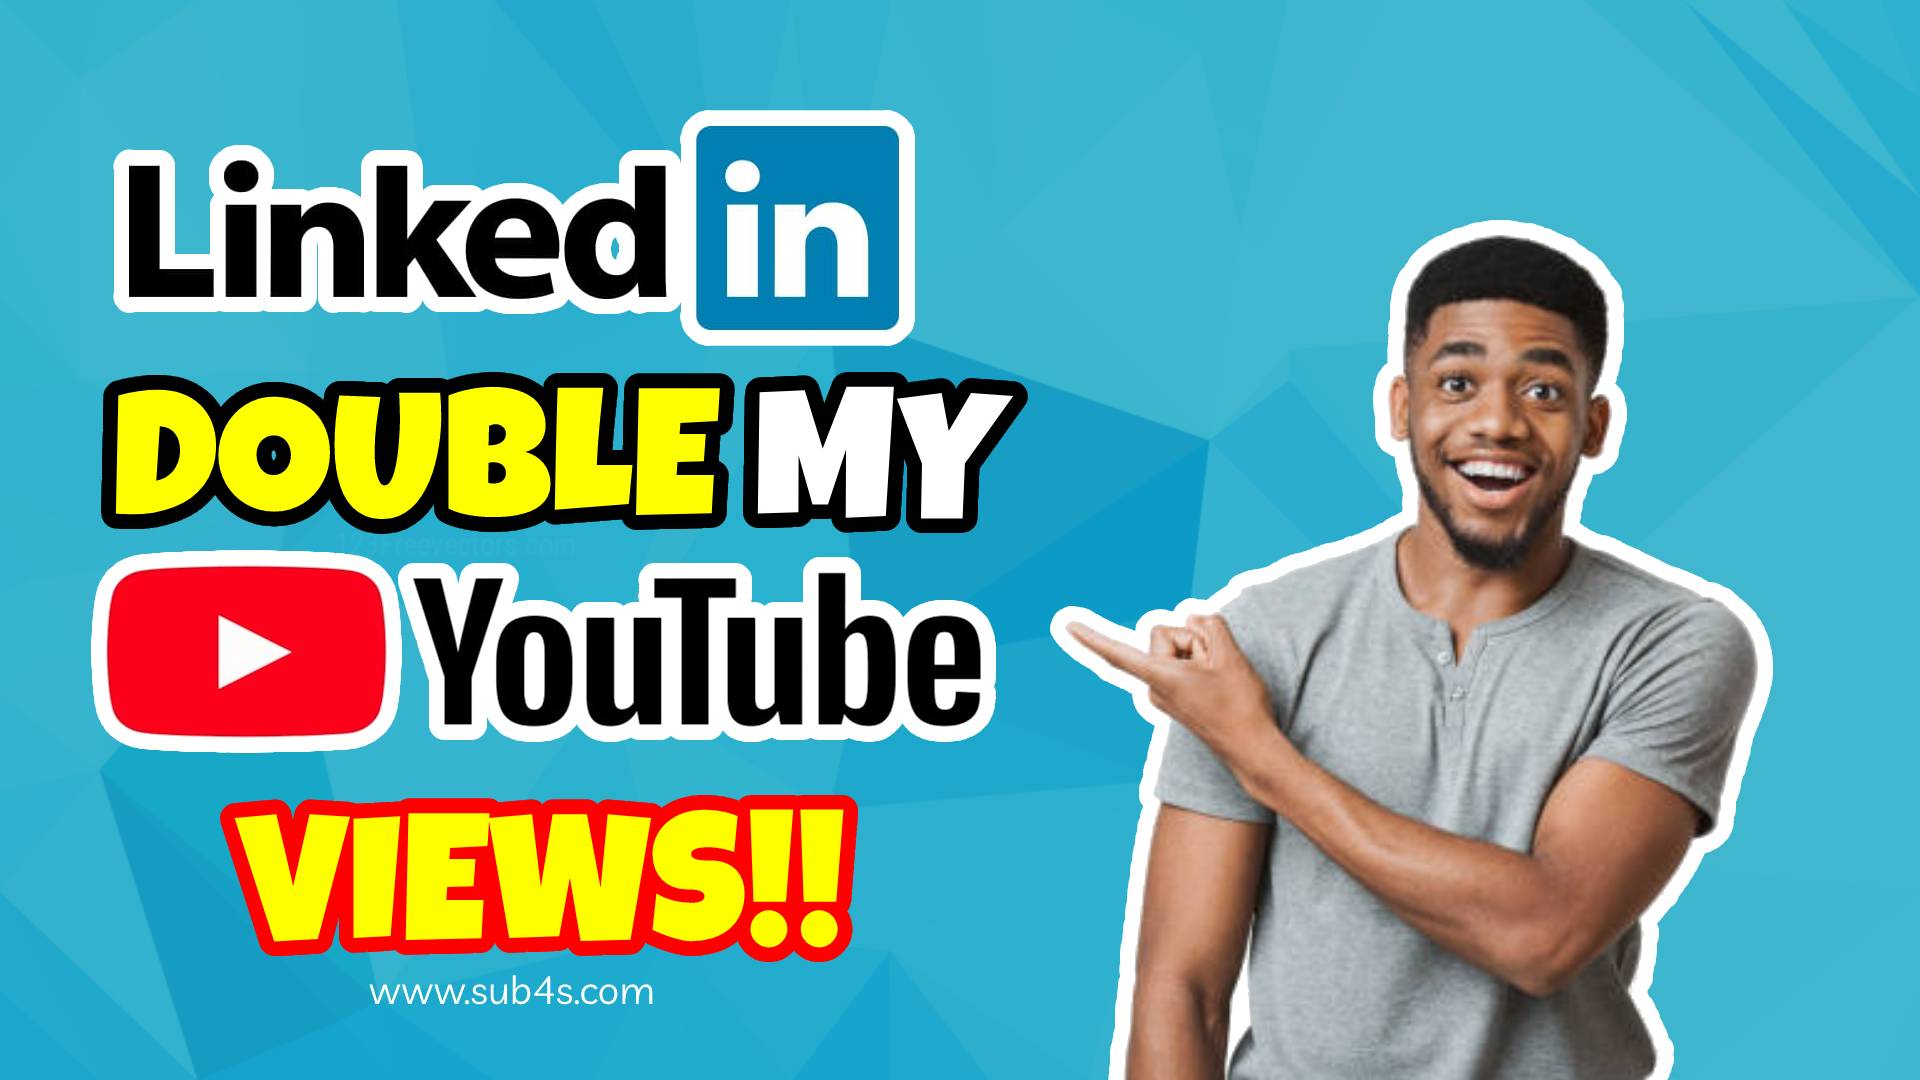 Posting Videos on LinkedIn DOUBLED My YouTube Channel Views